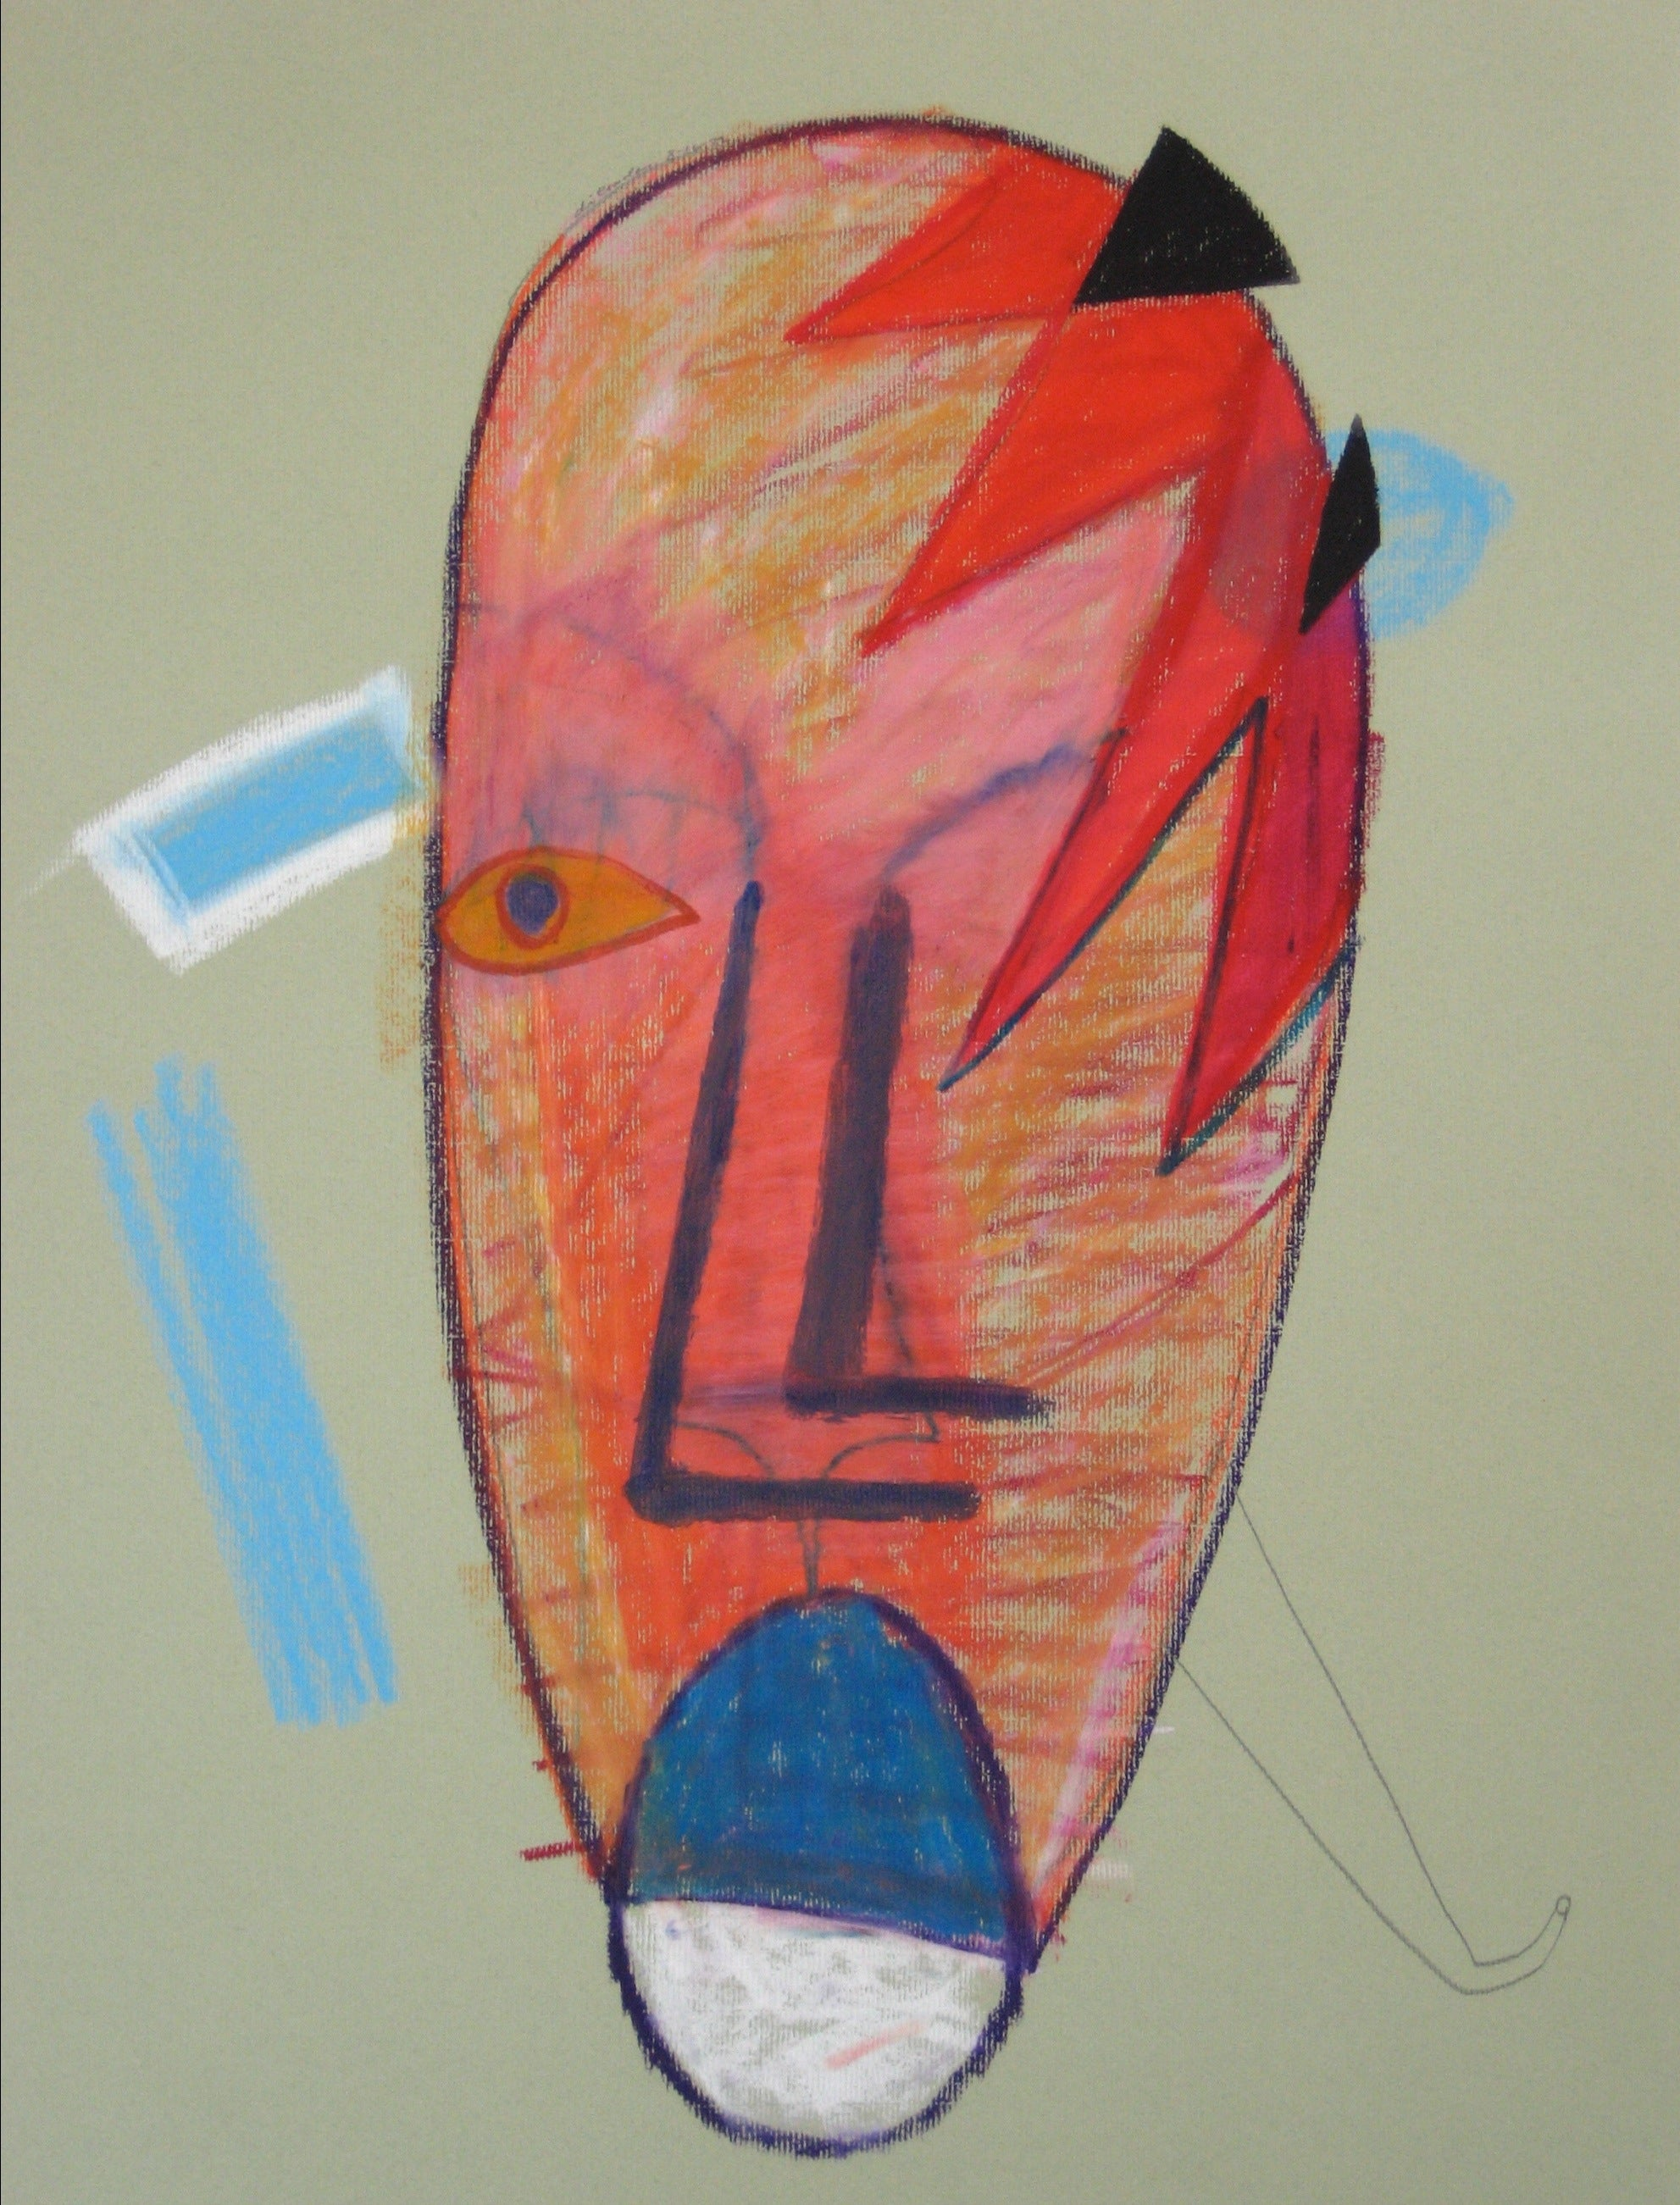 Surreal Face in Red & Blue<br>1972 Graphite & Pastel<br><br>#17190